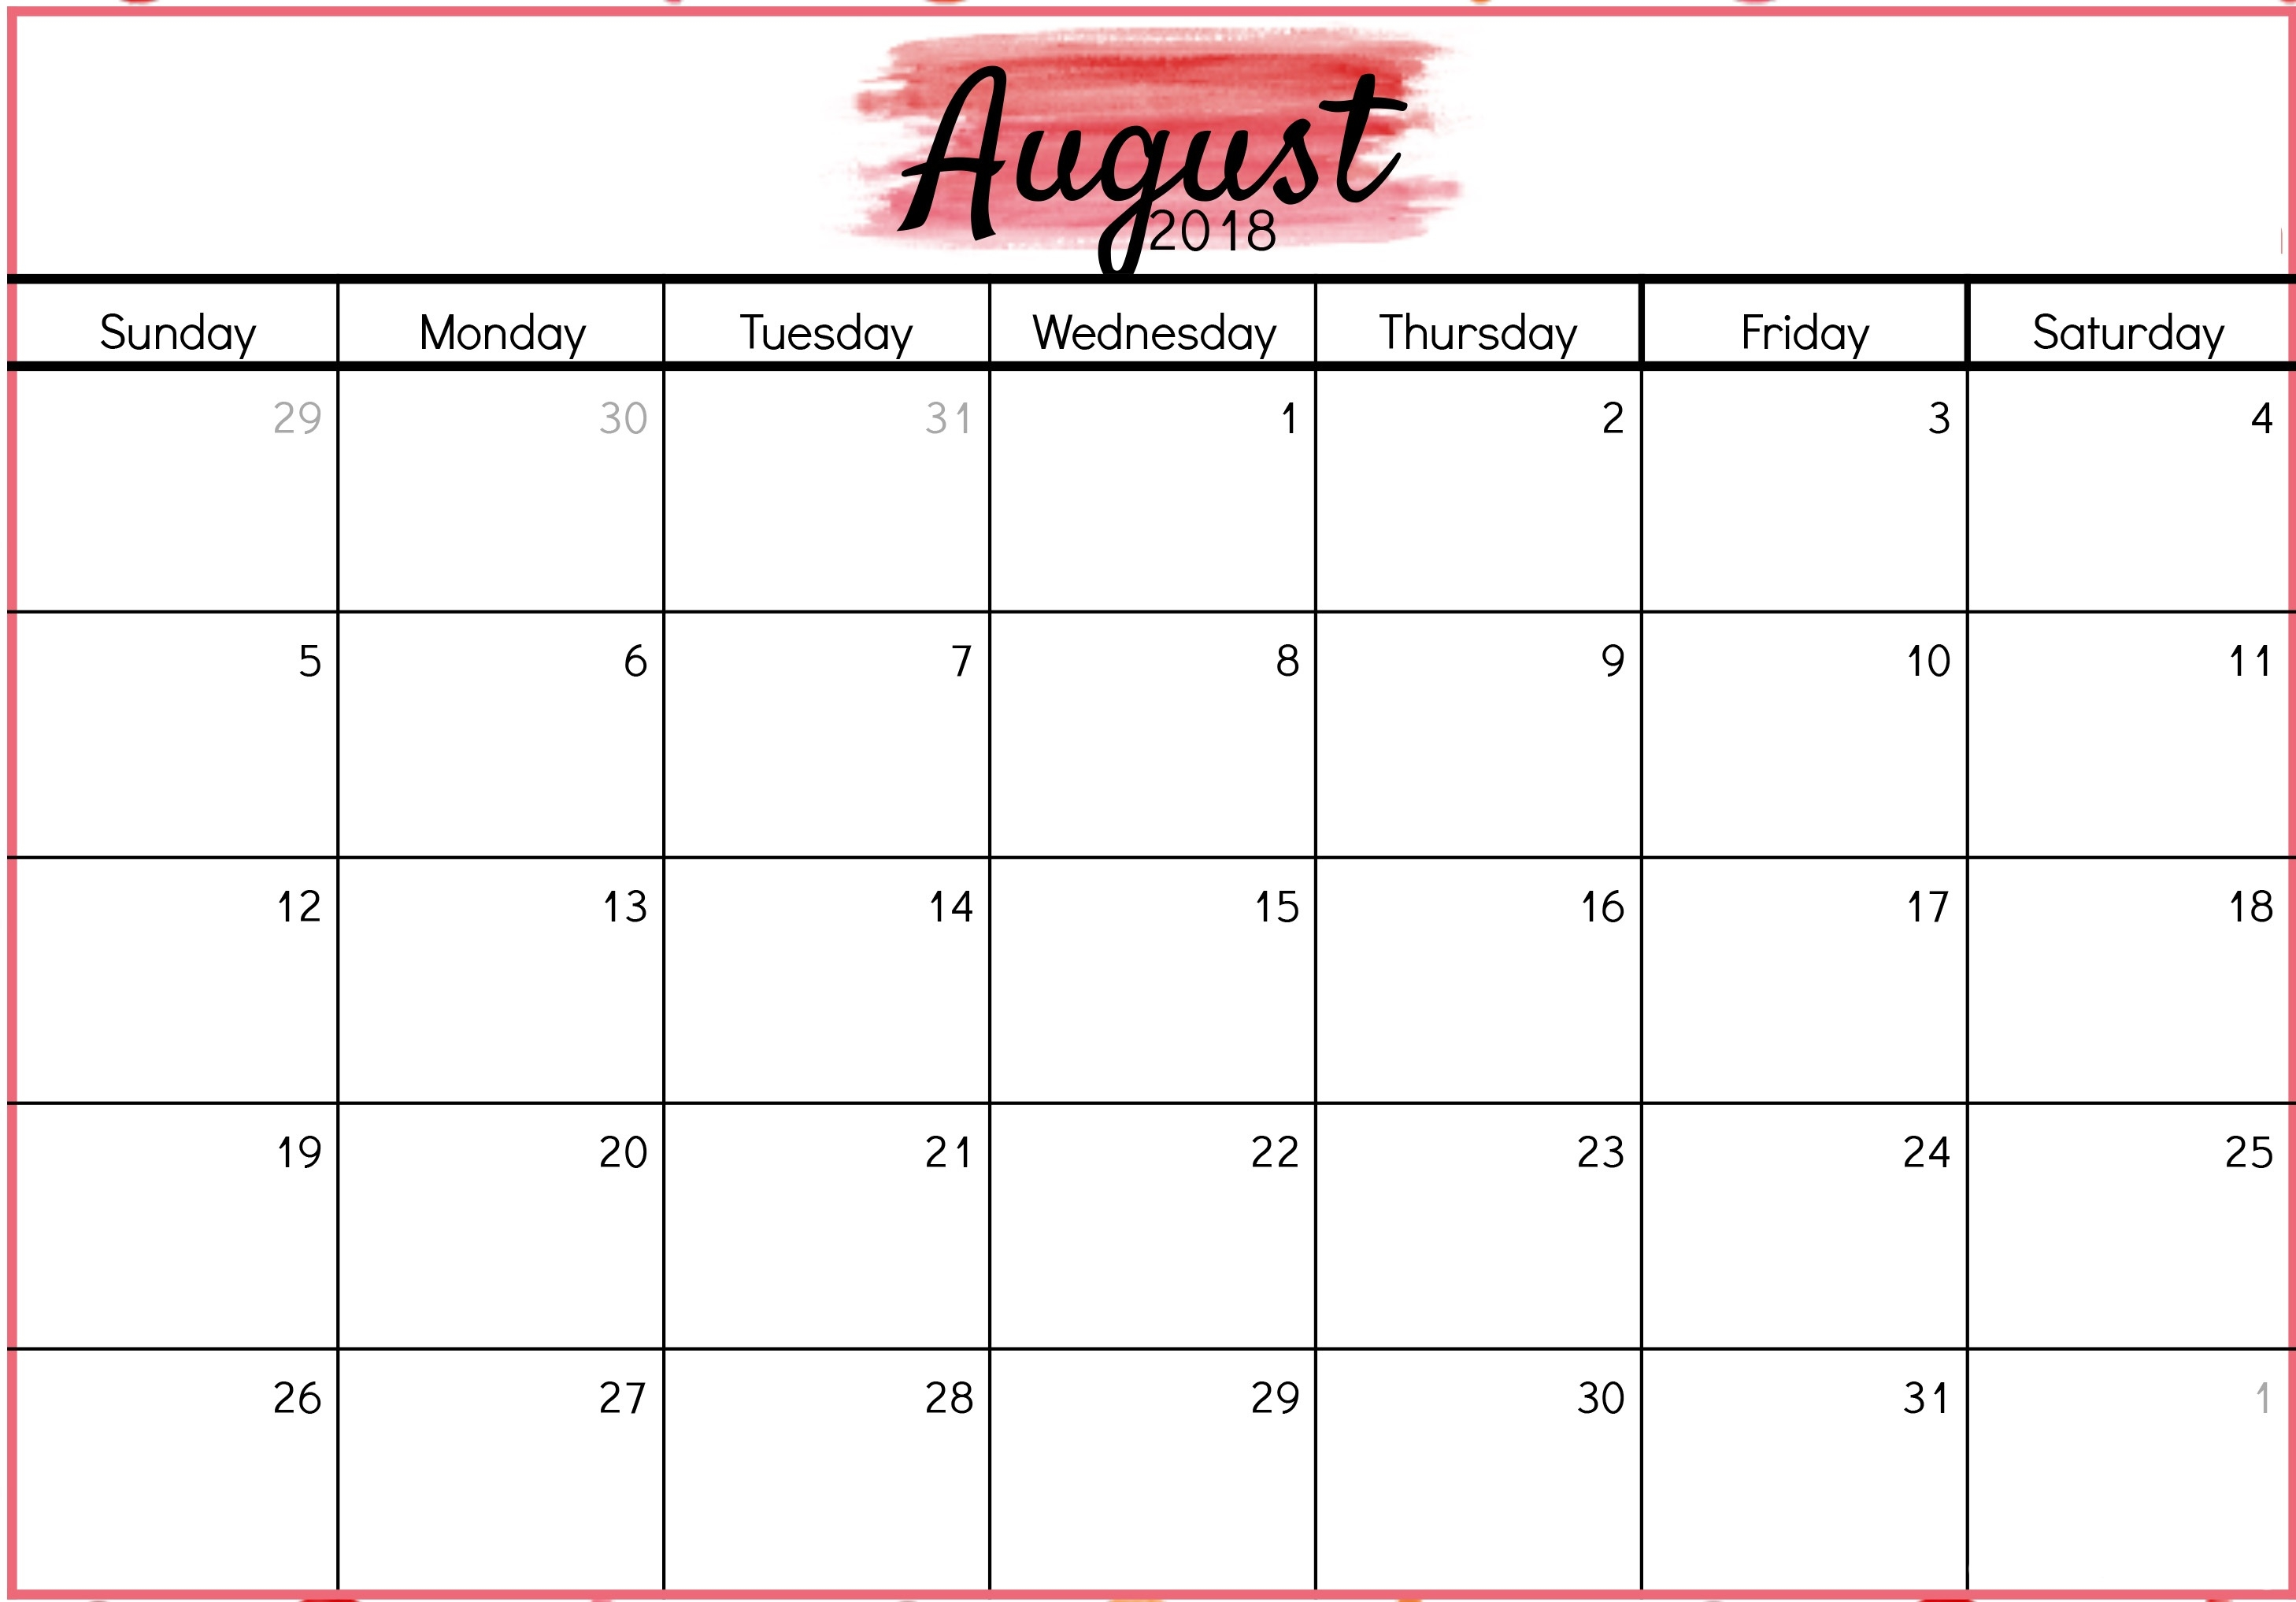 august 2018 printable calendar scripture free hd images Calendar August 2018 Printable Valentines erdferdf